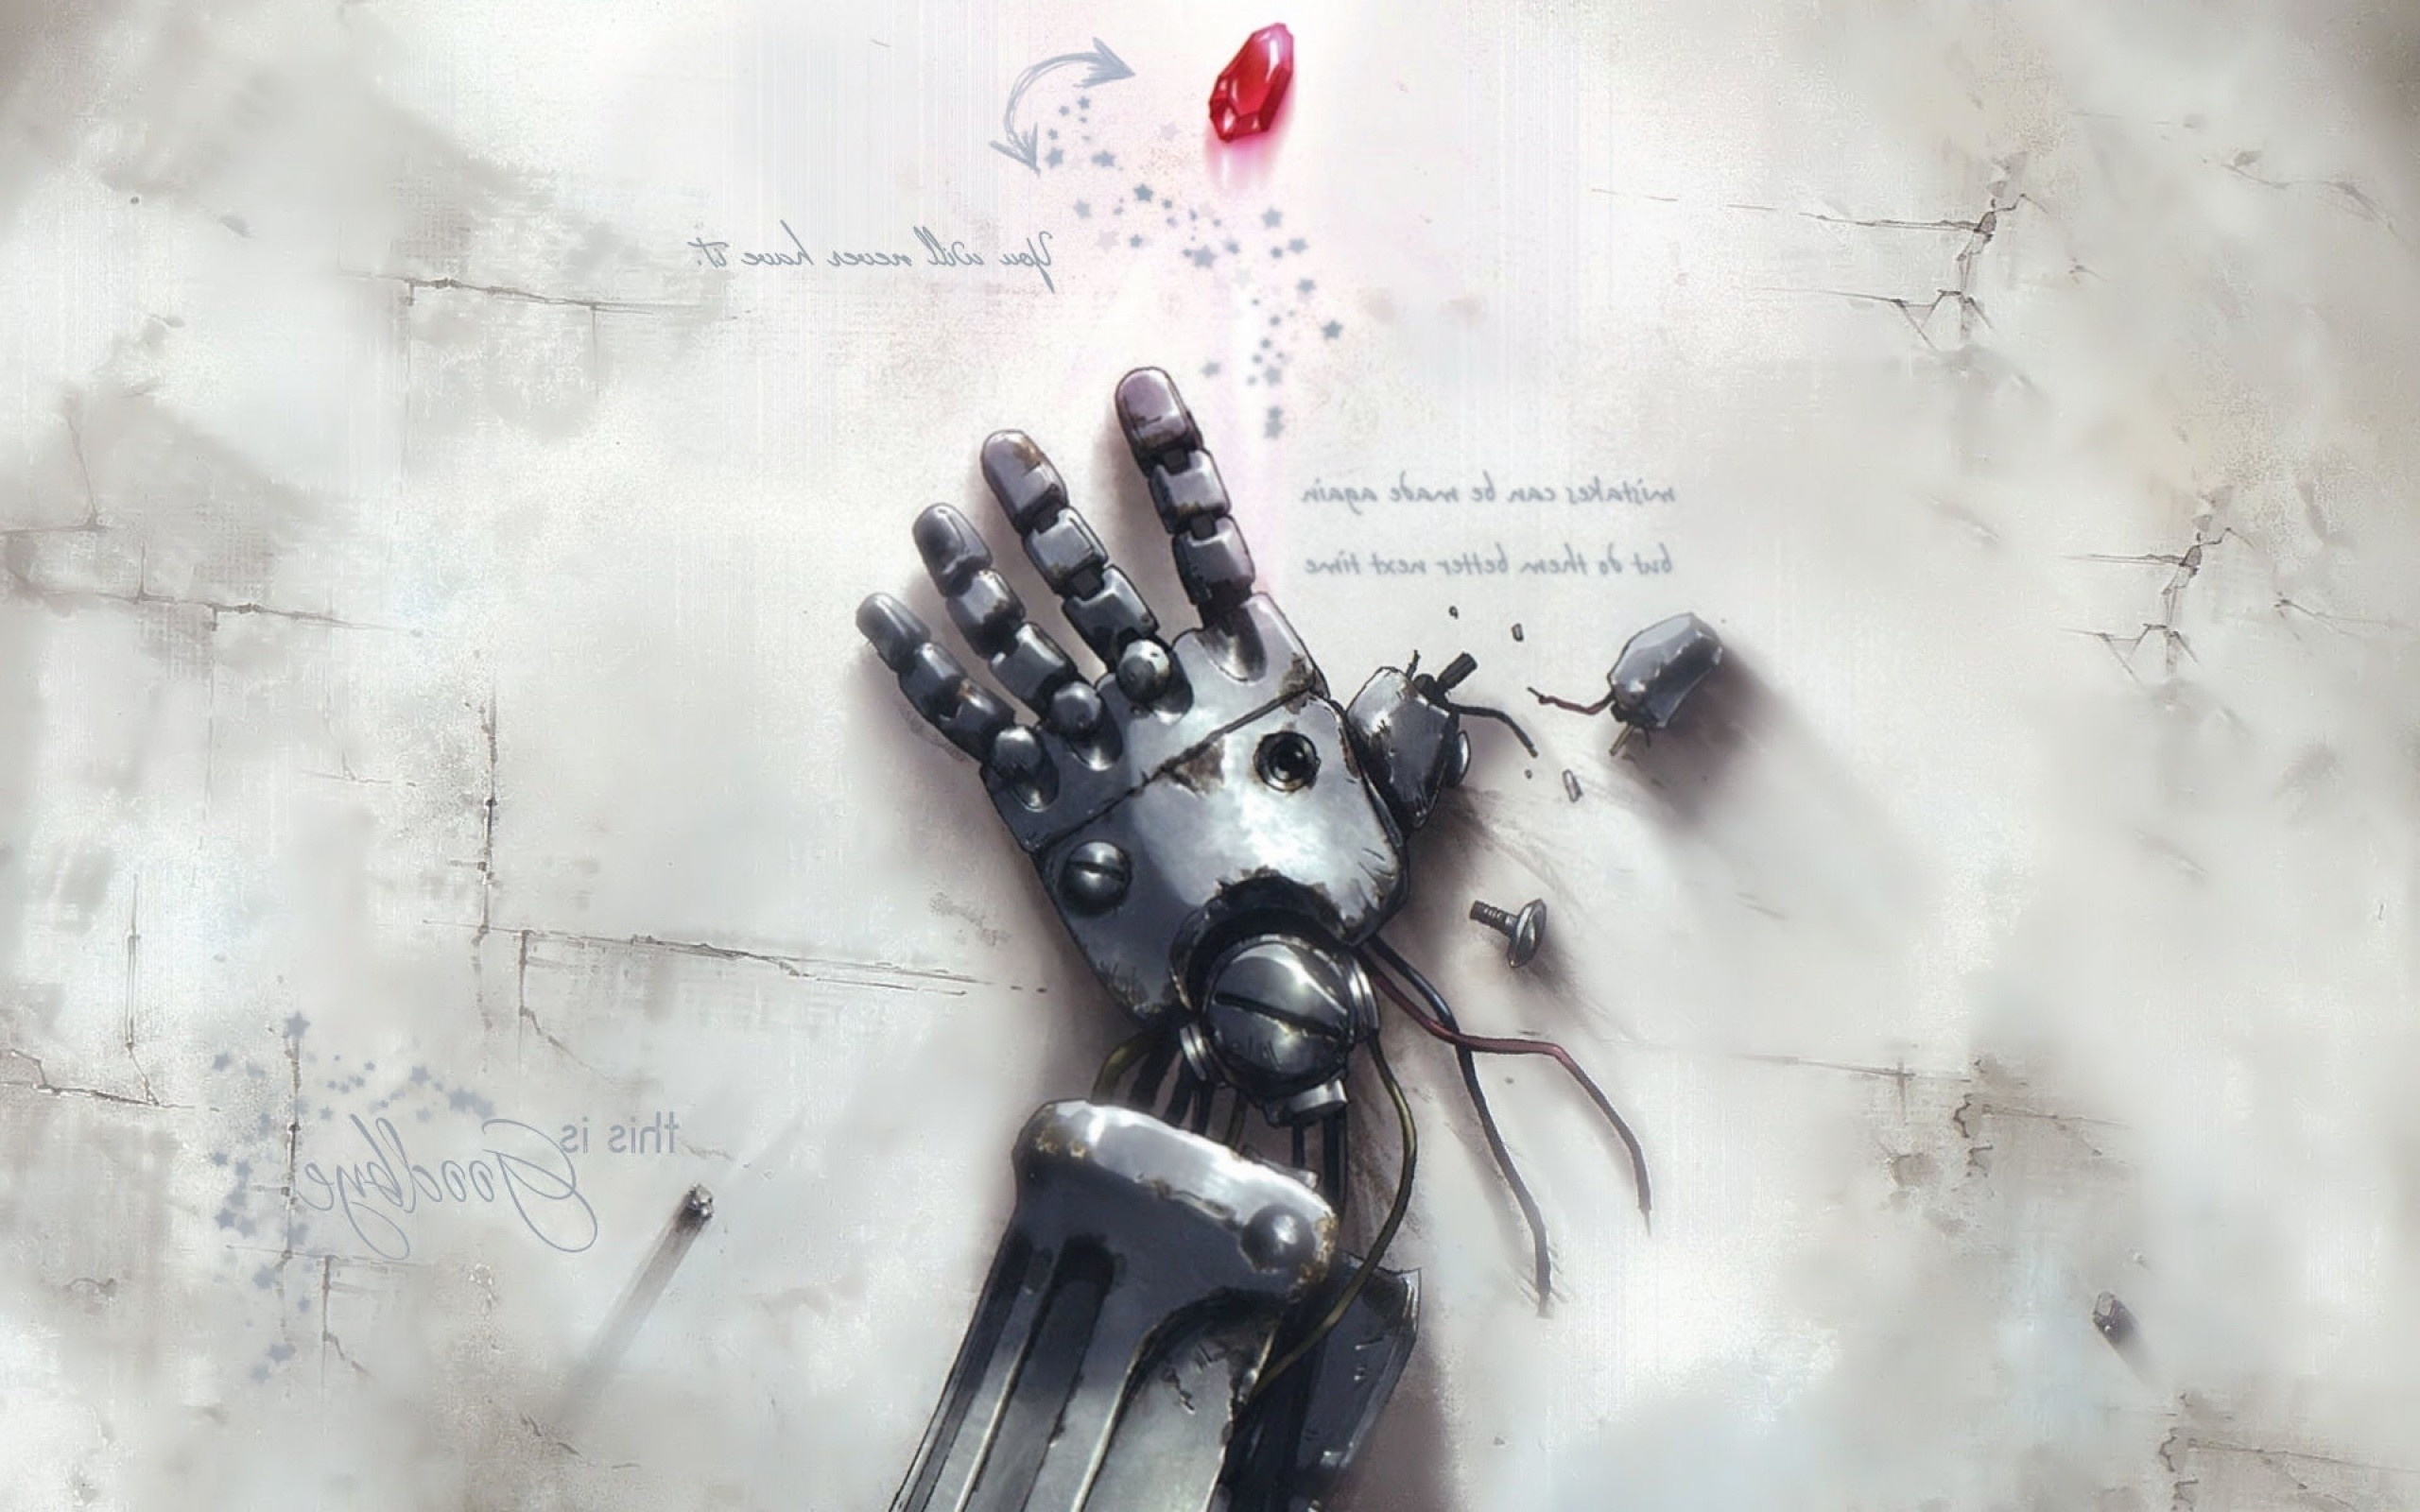 Fullmetal Alchemist Wallpapers Hd 68 Background Pictures